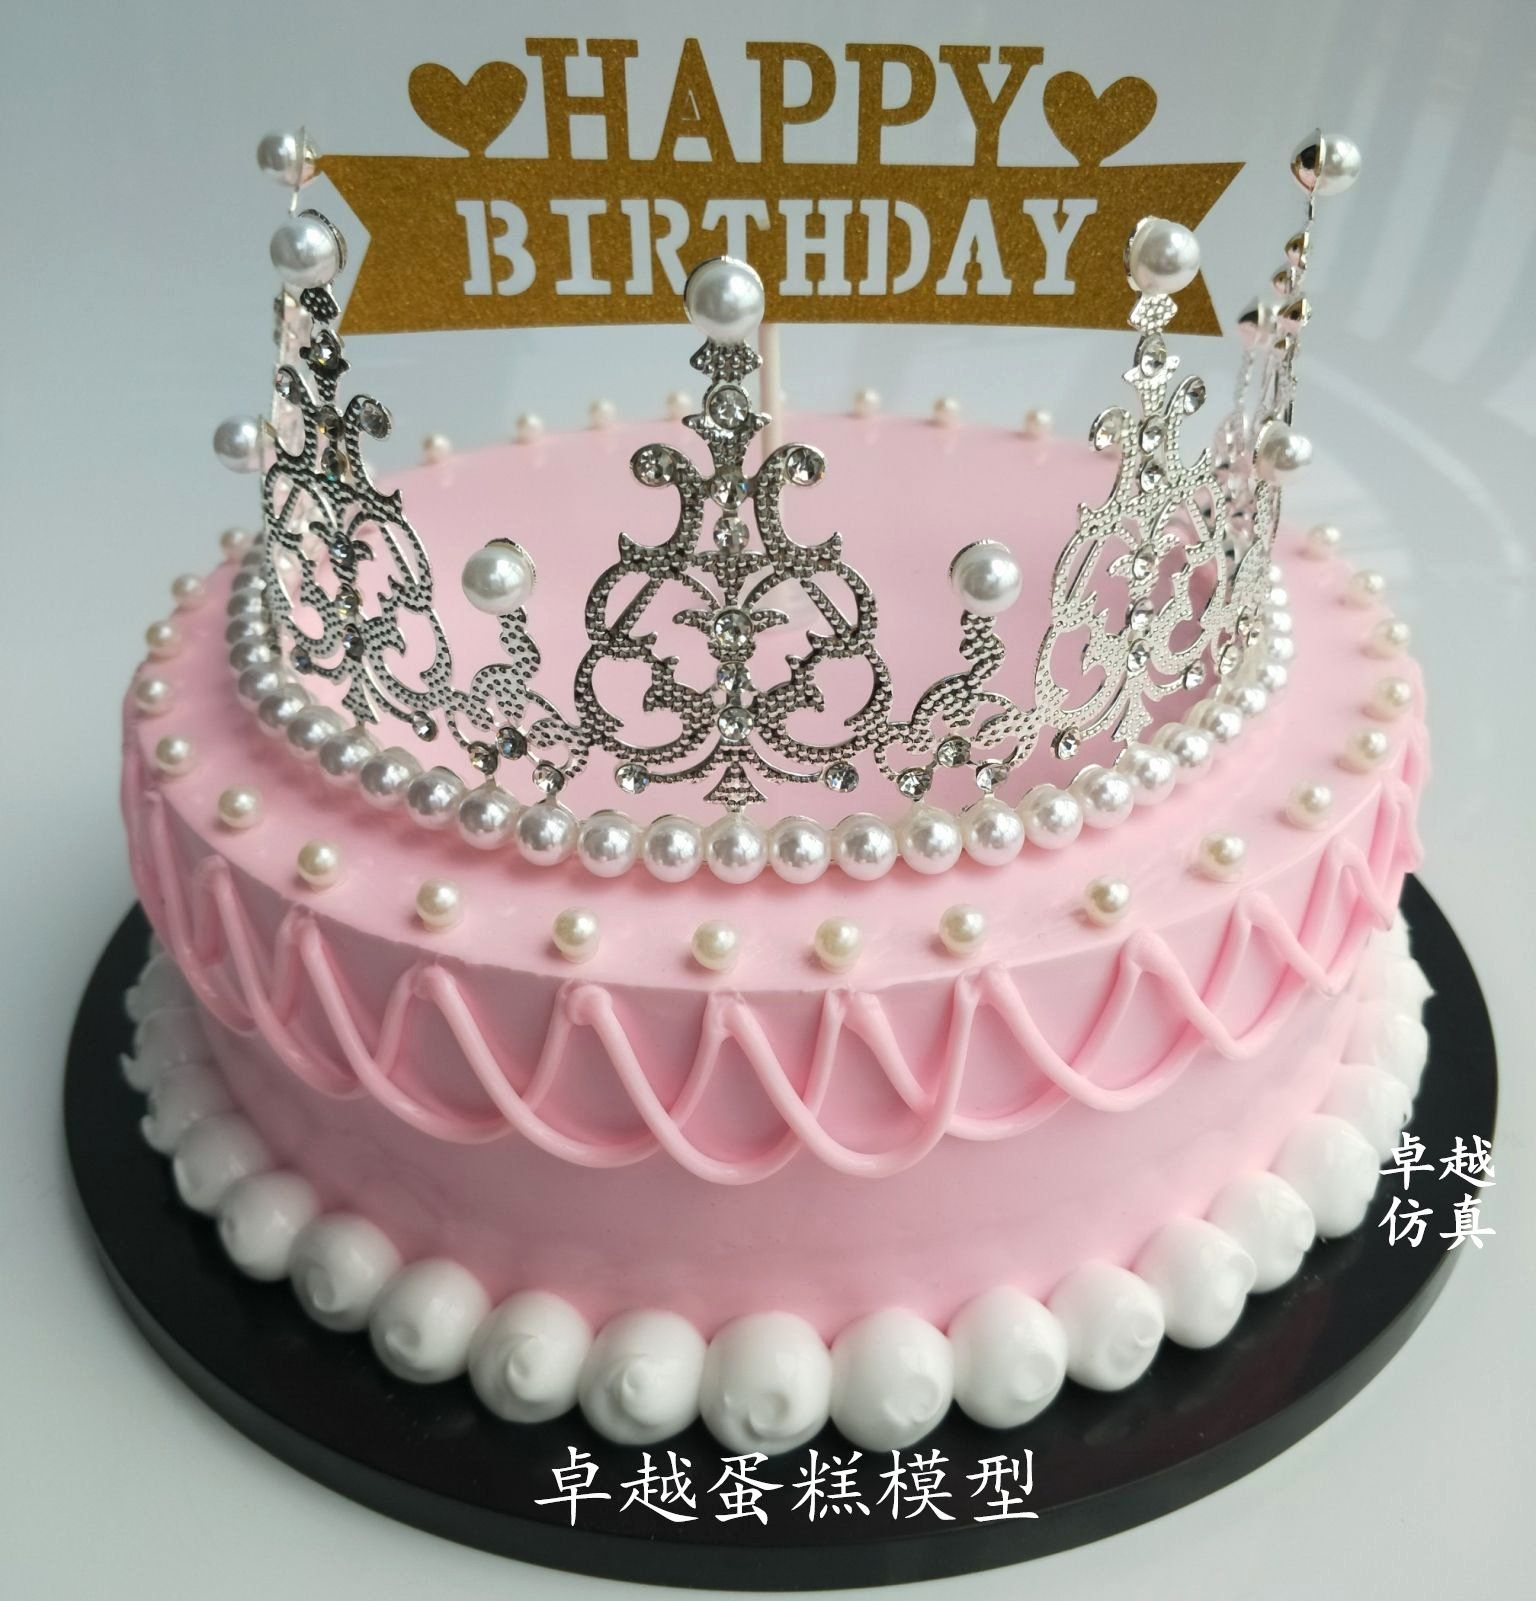 Happy Birthday Teenager Images Inspirational 25 Awesome Photo Of Teenage Girl Birthday Cakes Artofit Birthday Cake Crown Queens Birthday Cake Queen Cakes